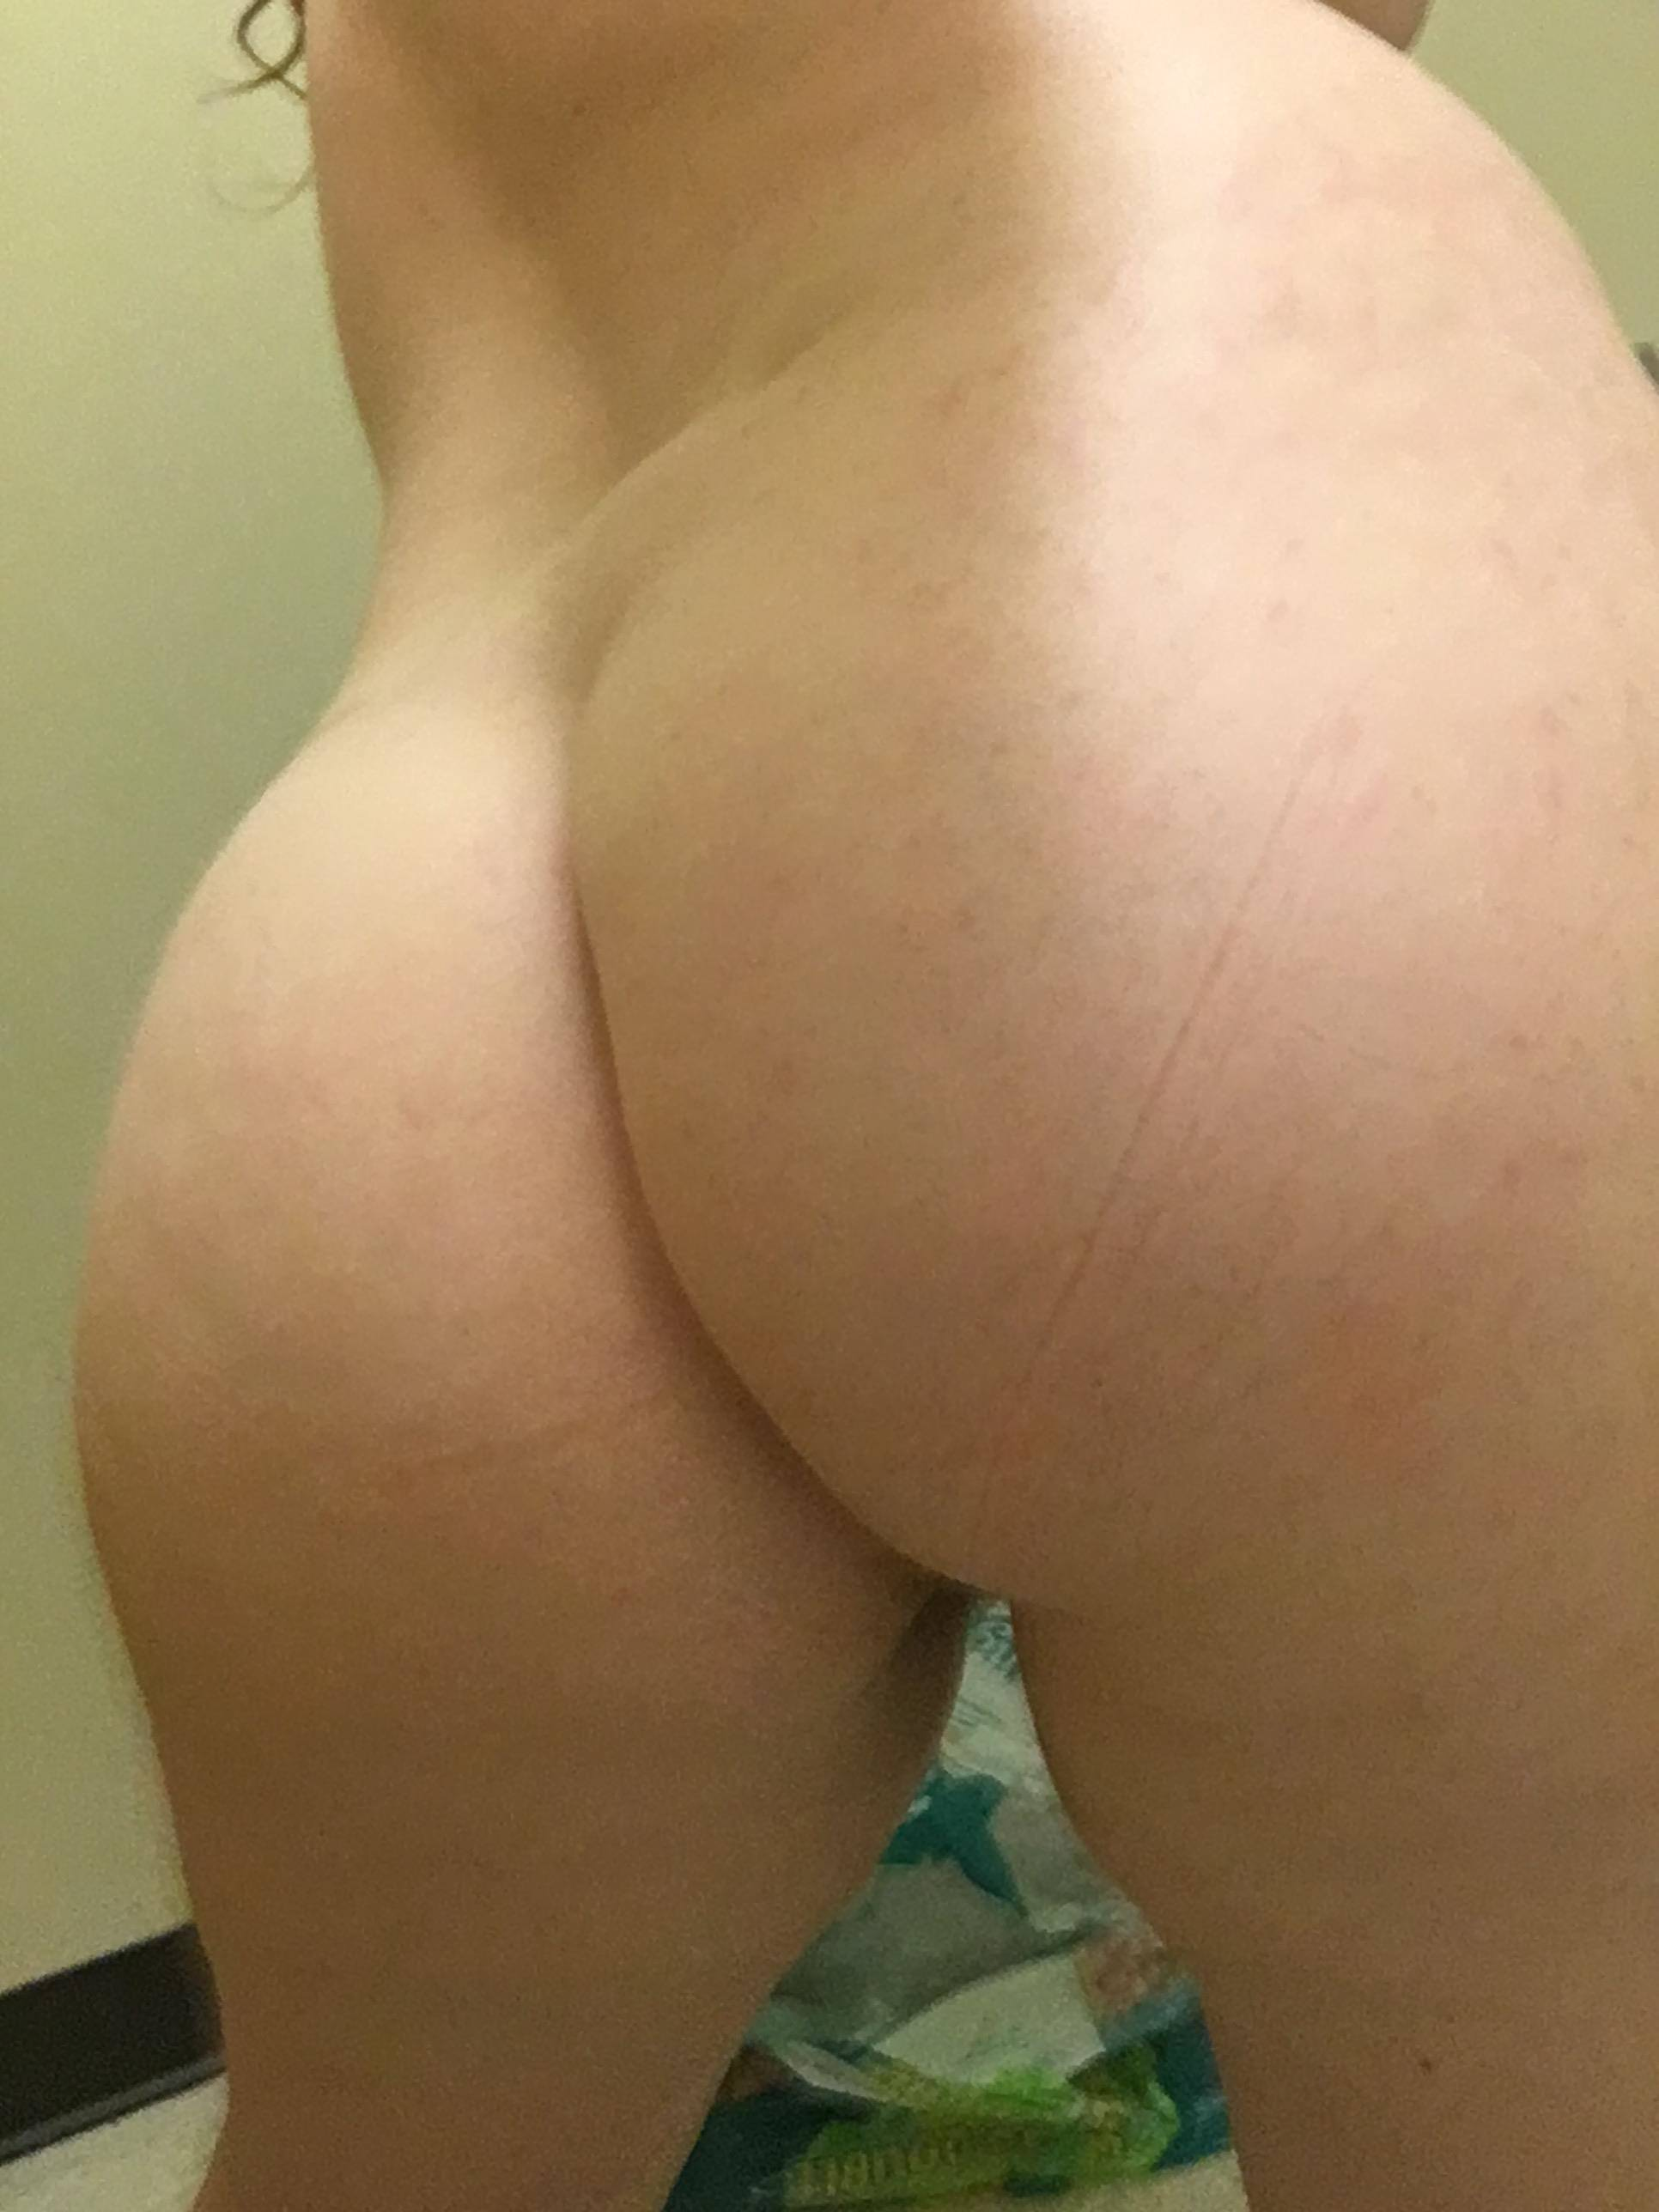 Oc My Thick Barely Legal Ass For Your Enjoyment 3 Porn Pic